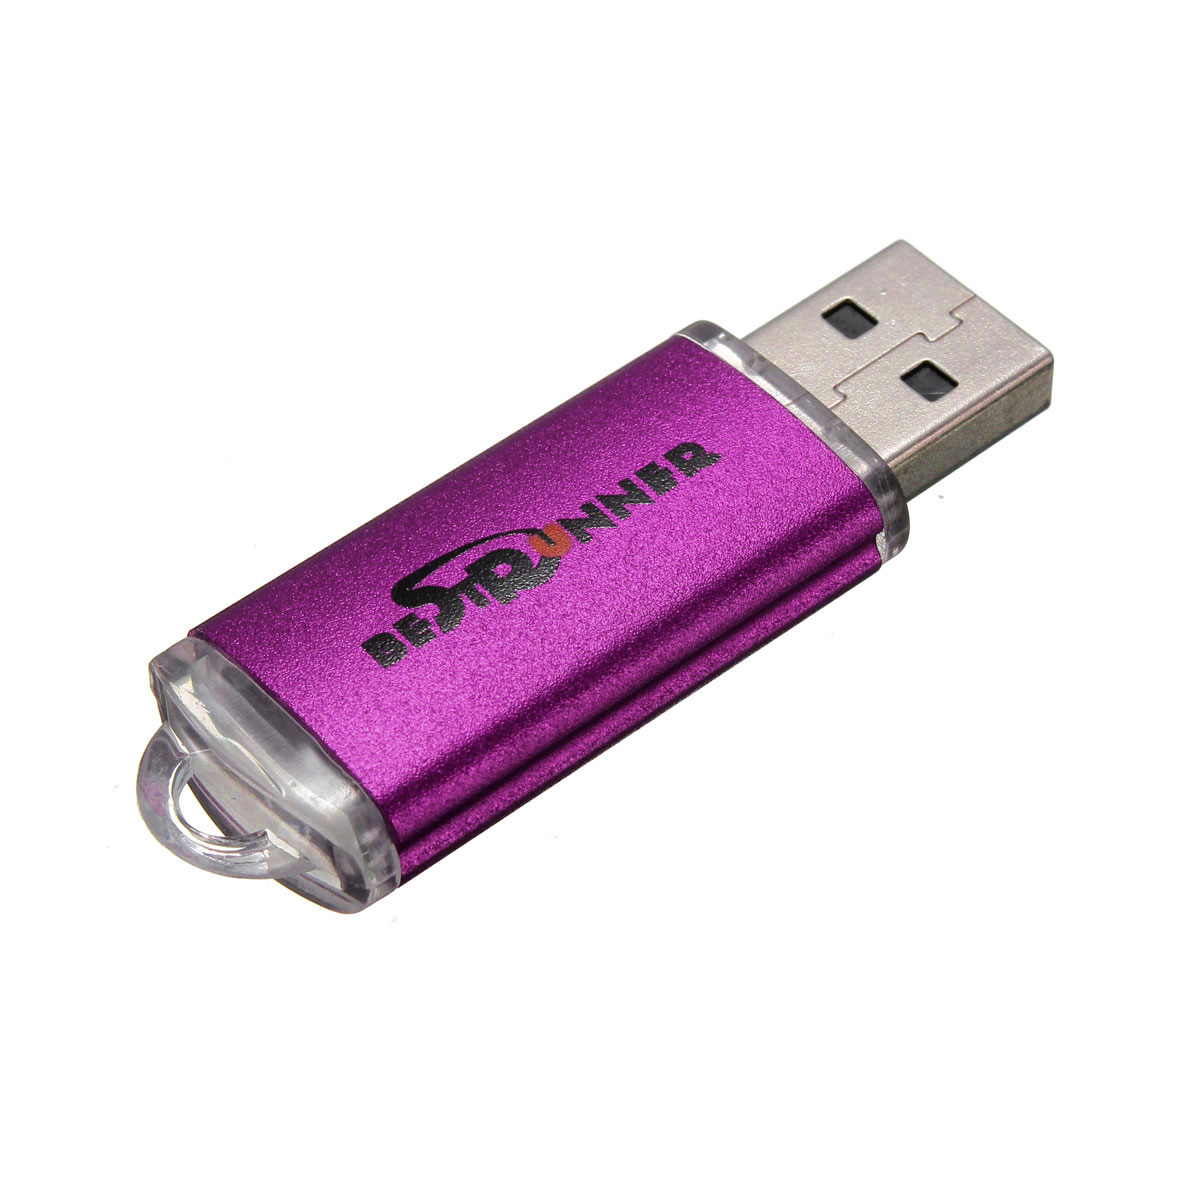 BESTRUNNER 32GB USB 2.0 Flash Pen Drive Bright Memory Stick Thumb Disk